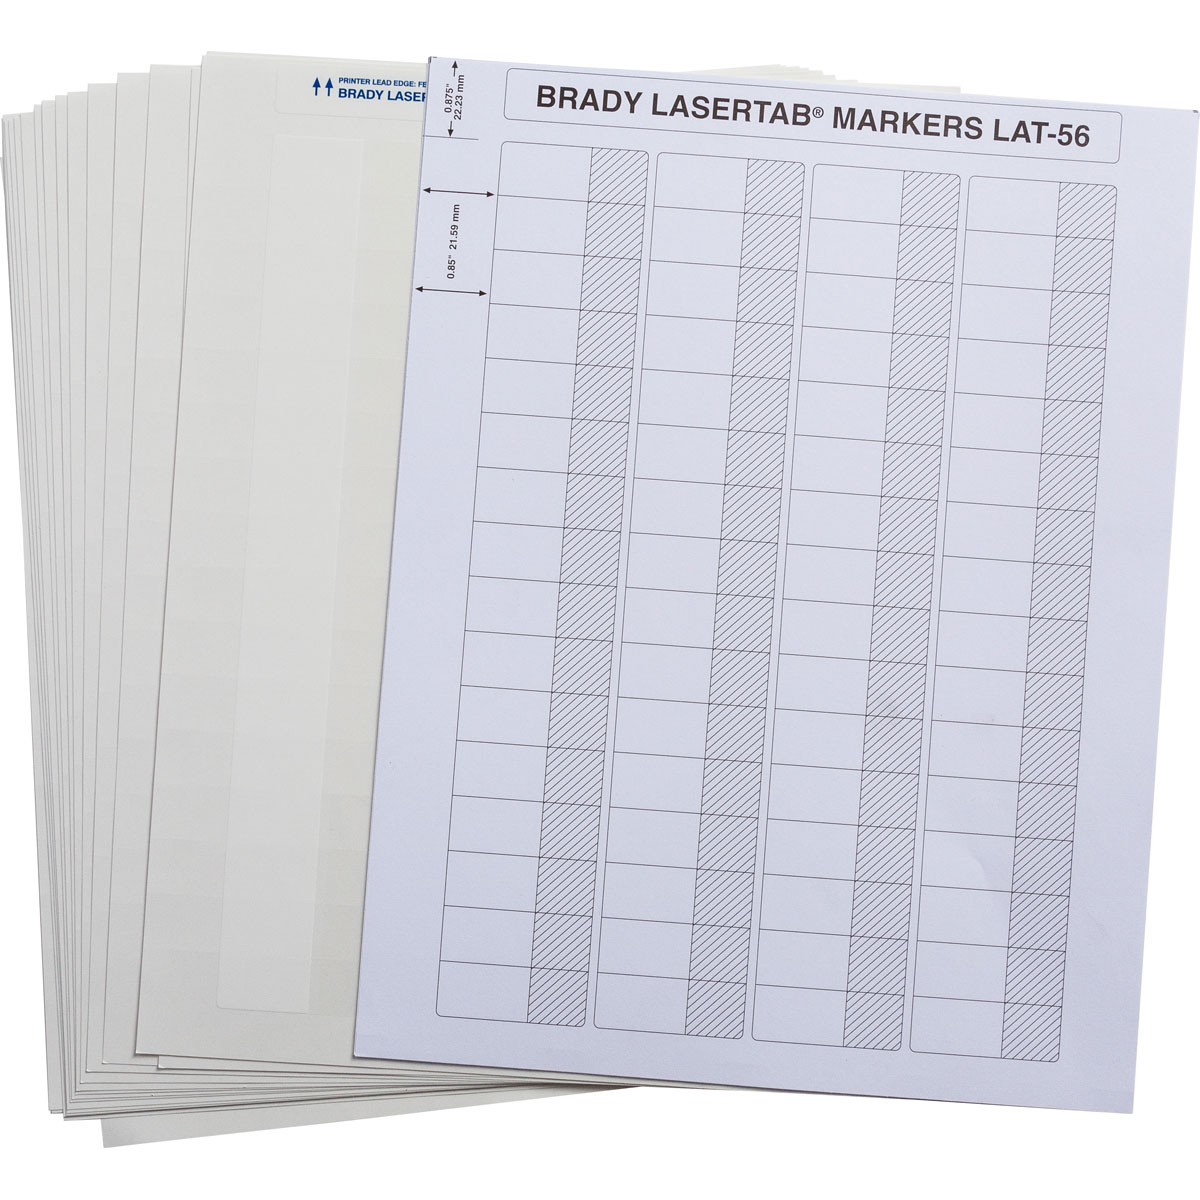 Brady part lat 56 361 2 5 laser printable labels for Brady label templates